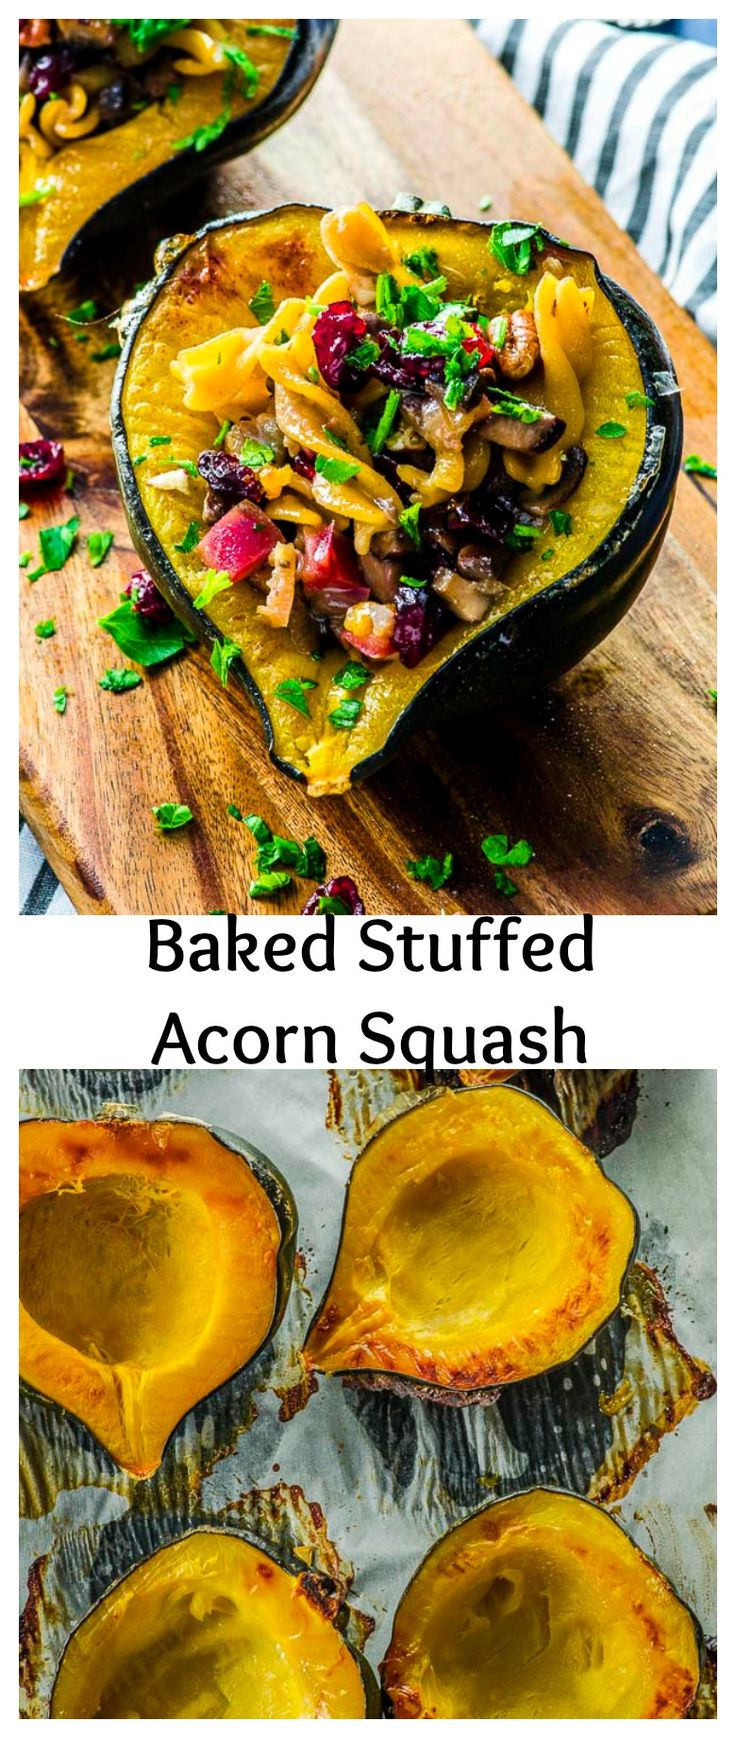 This Baked Stuffed Acorn Squash recipe is easy to…Edit description